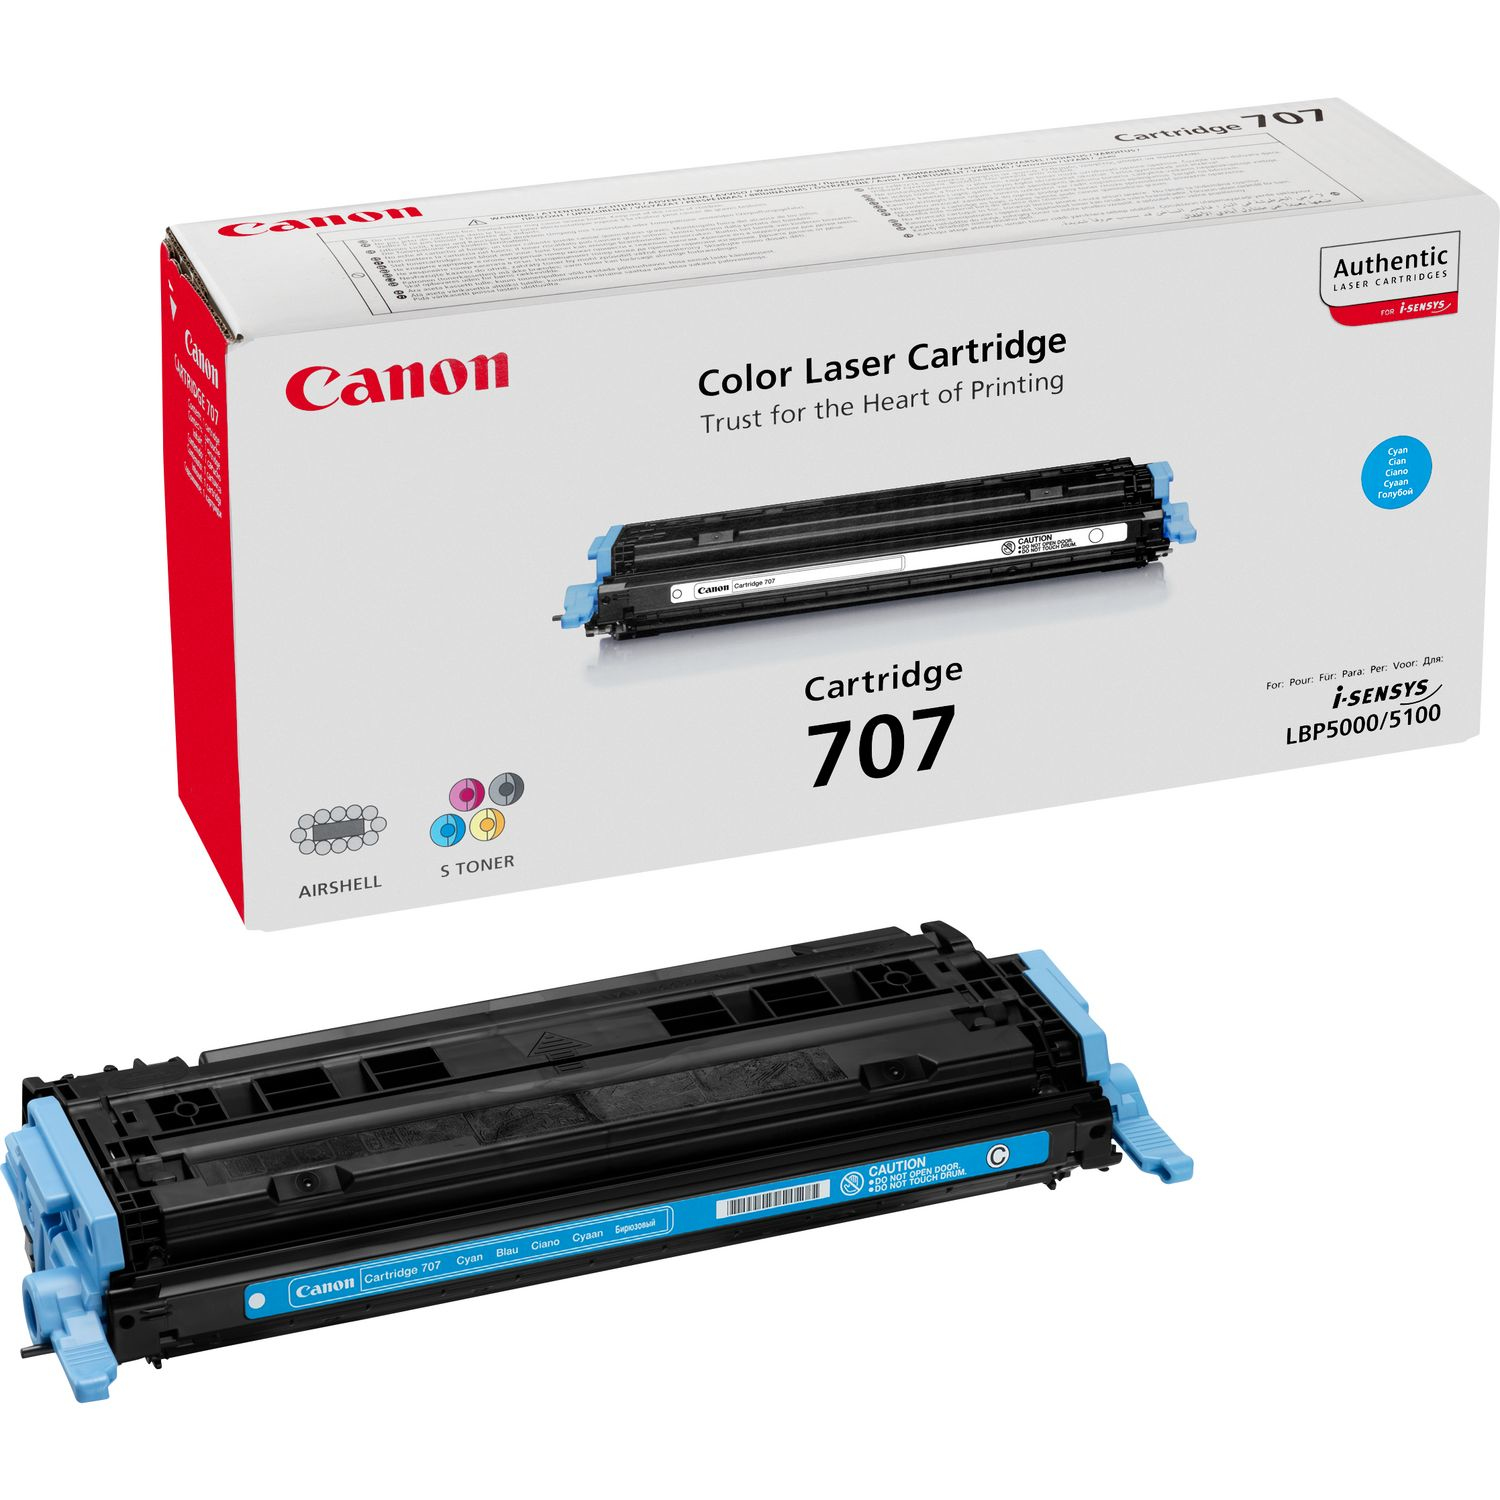 Remanufactured Canon 9423A004AA Toner Cartridge Cyan 9423A004AA - rem01